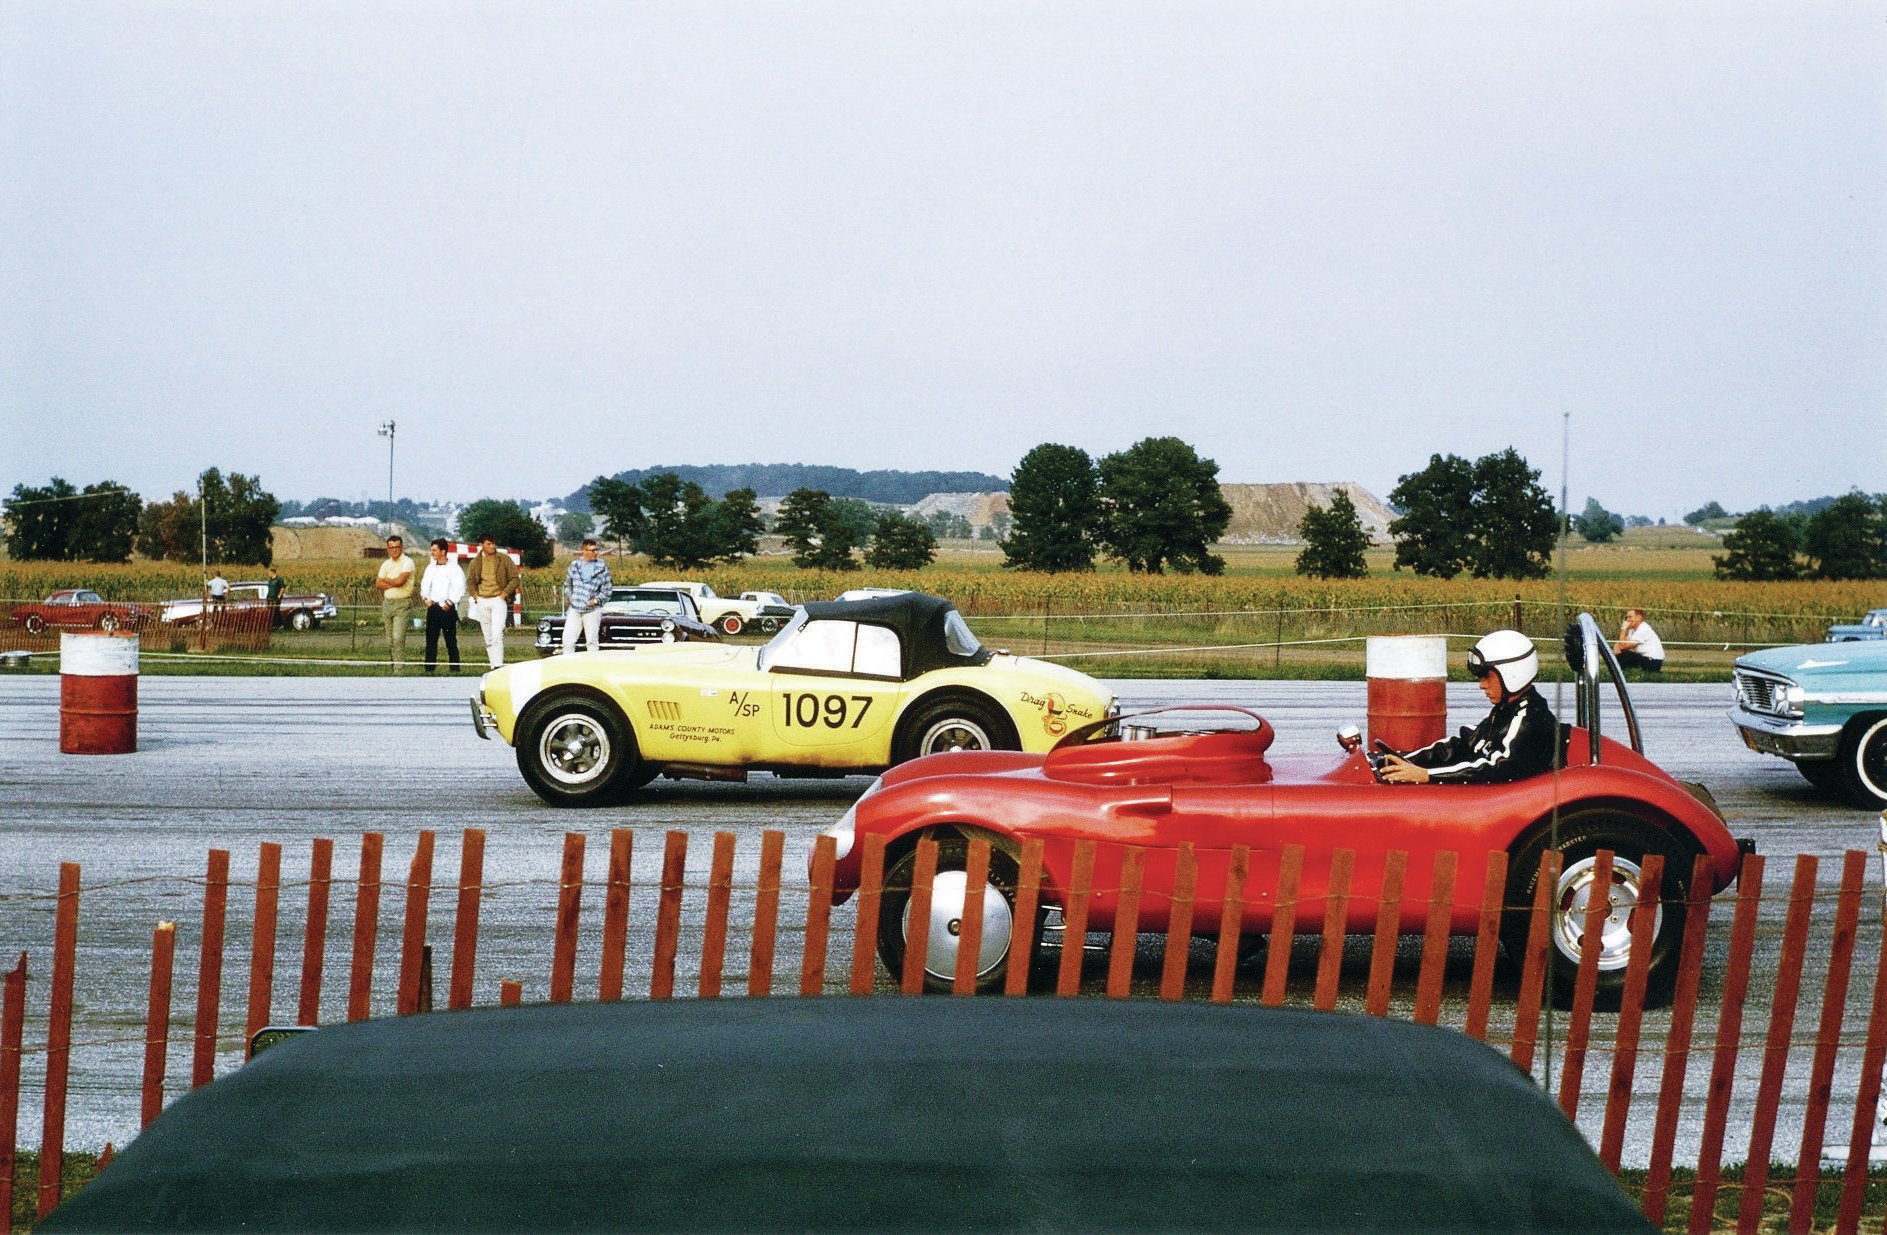 The Reimer Dragonsnake takes on an unknown competitor at York Drag-O-Way, in Thomasville, Pennsylvania.